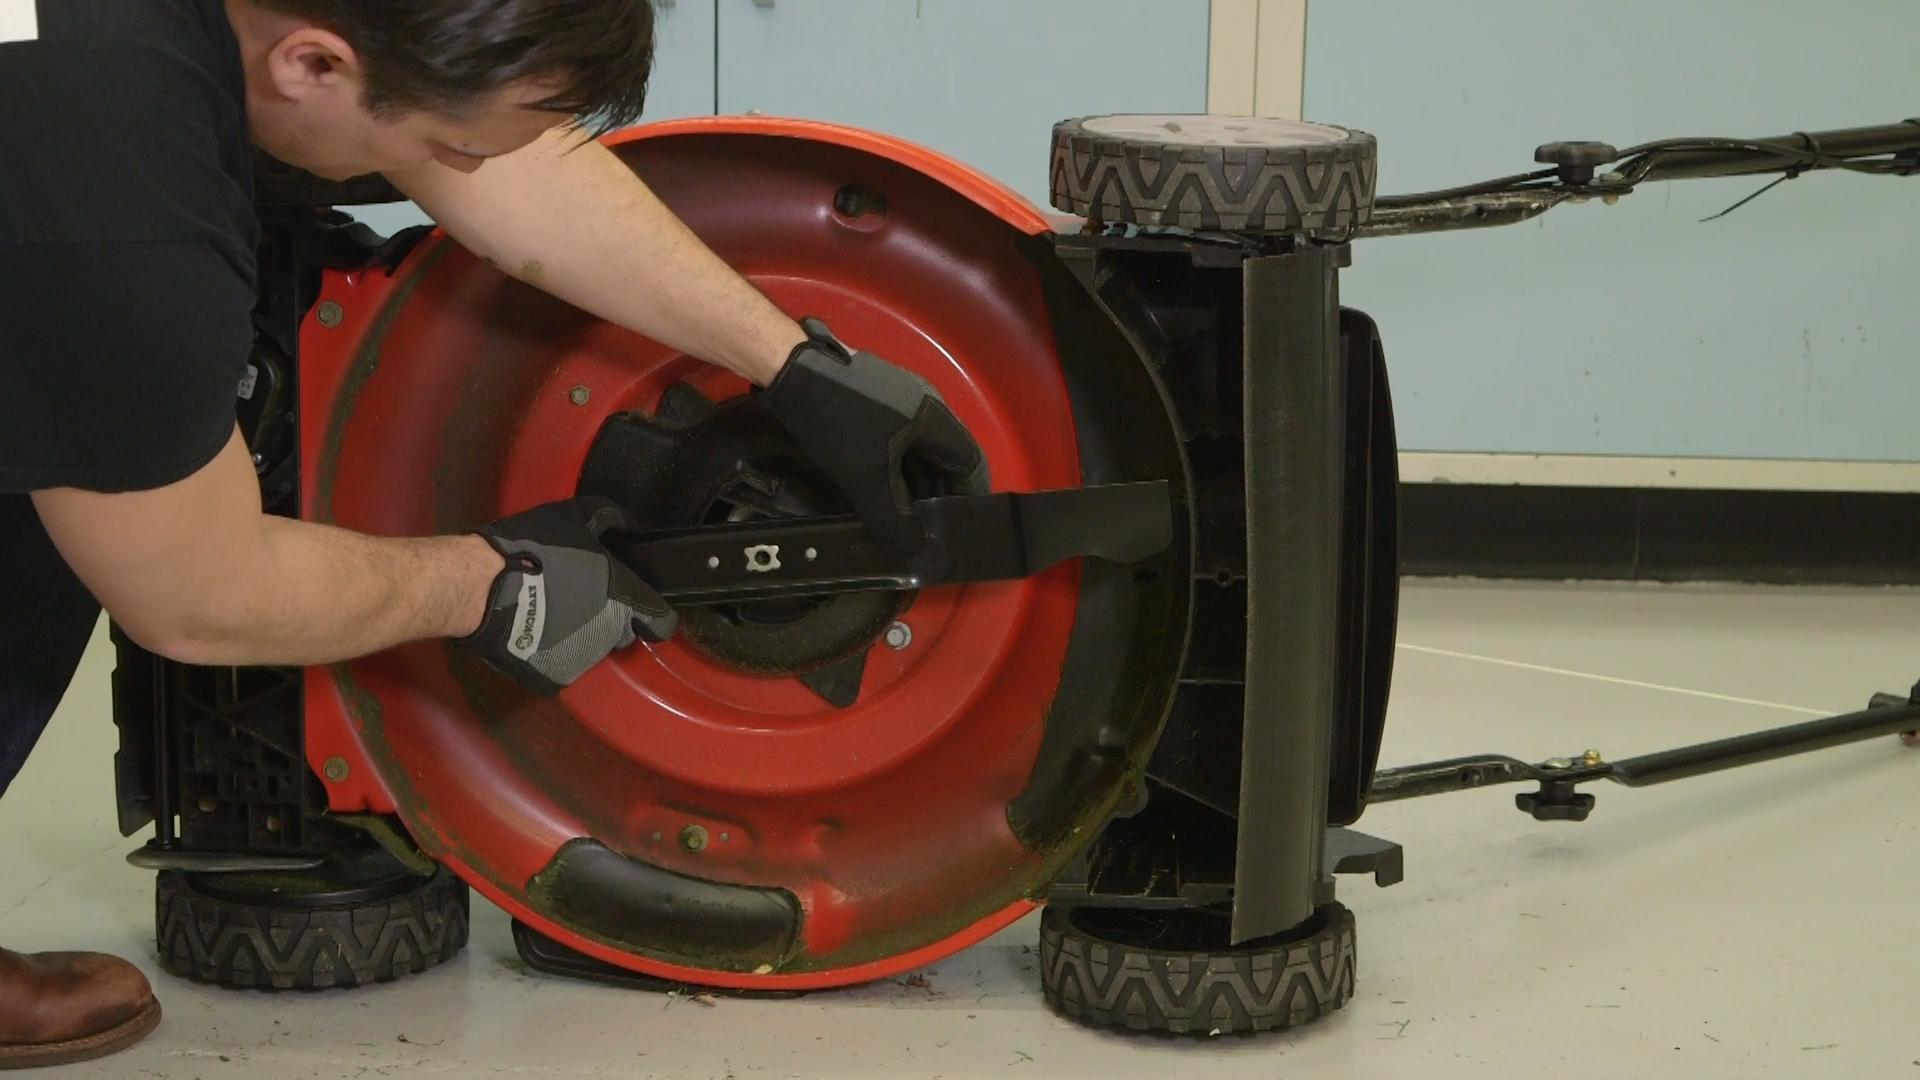 How to Replace a Lawn Mower Blade - Consumer Reports